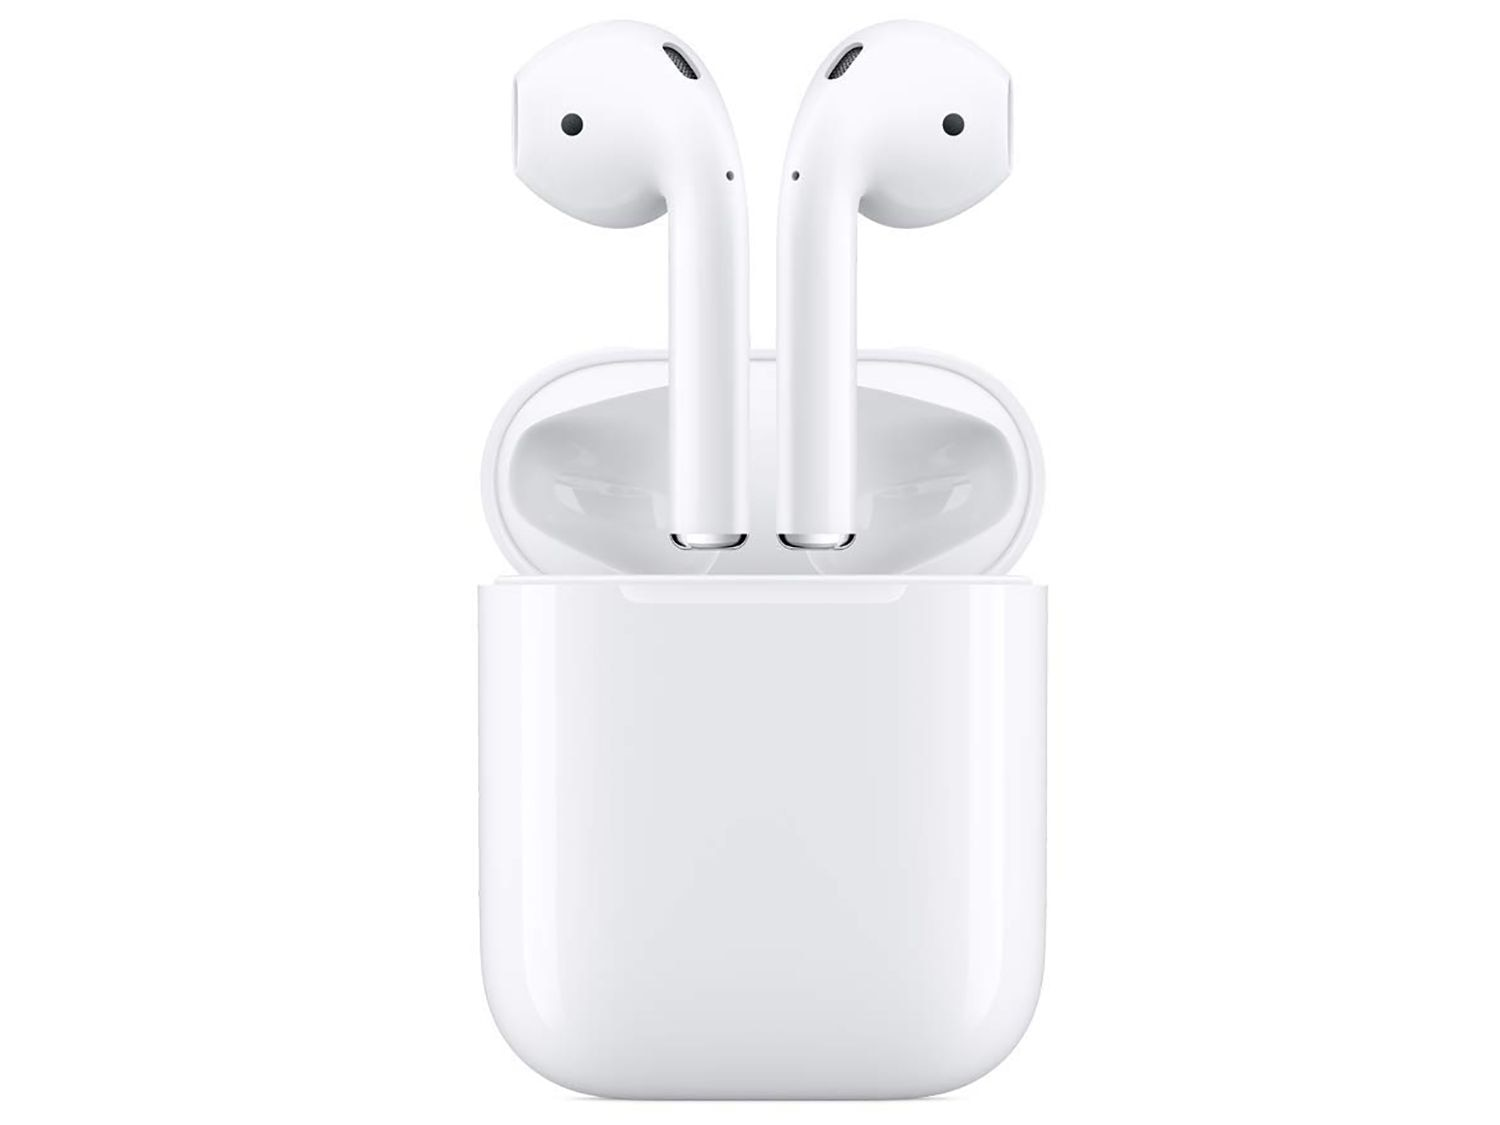 Listen to music, take calls, and receive directions all from the sleek Apple AirPods.